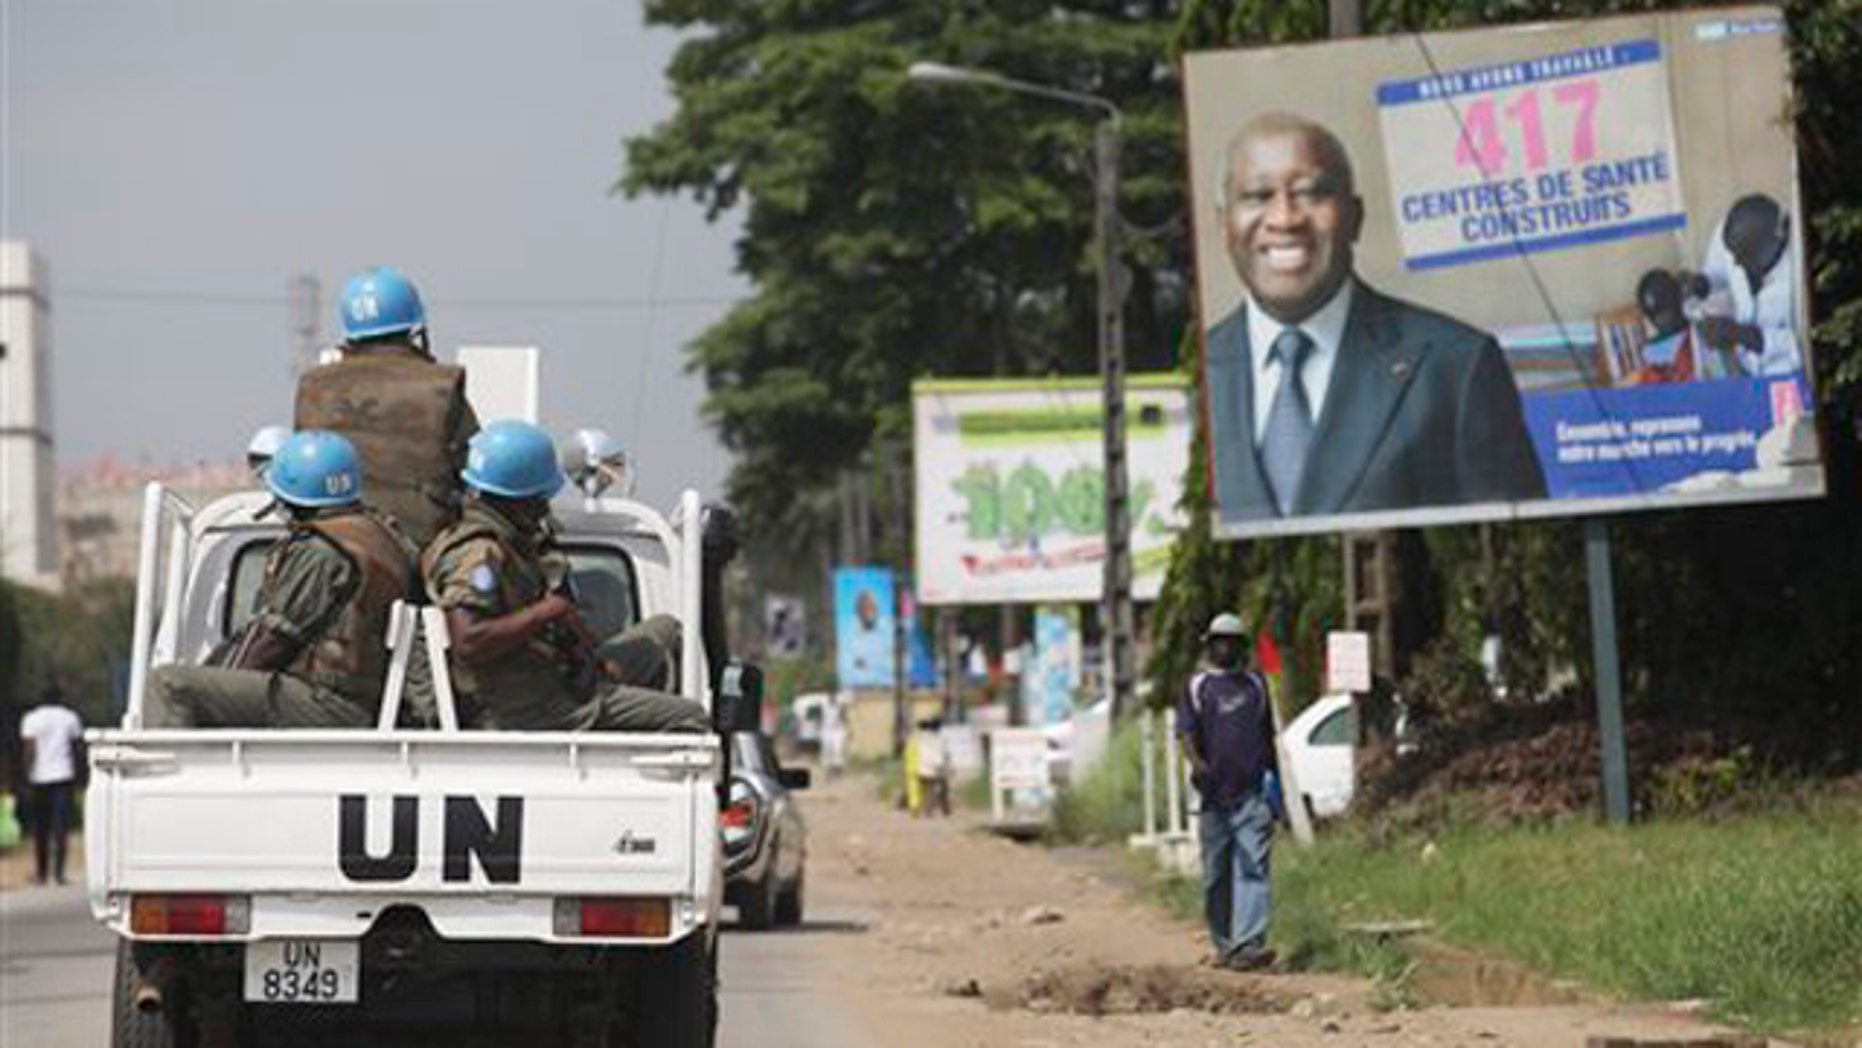 Dec. 23, 2010: U.N. forces drive past a billboard for President Laurent Gbagbo in Ivory Coast, Abidjan. The United Nations said Thursday that at least 173 people have been killed and dozens of others have gone missing or been tortured following Ivory Coast's disputed presidential election, which has prompted fears of a return to civil war.